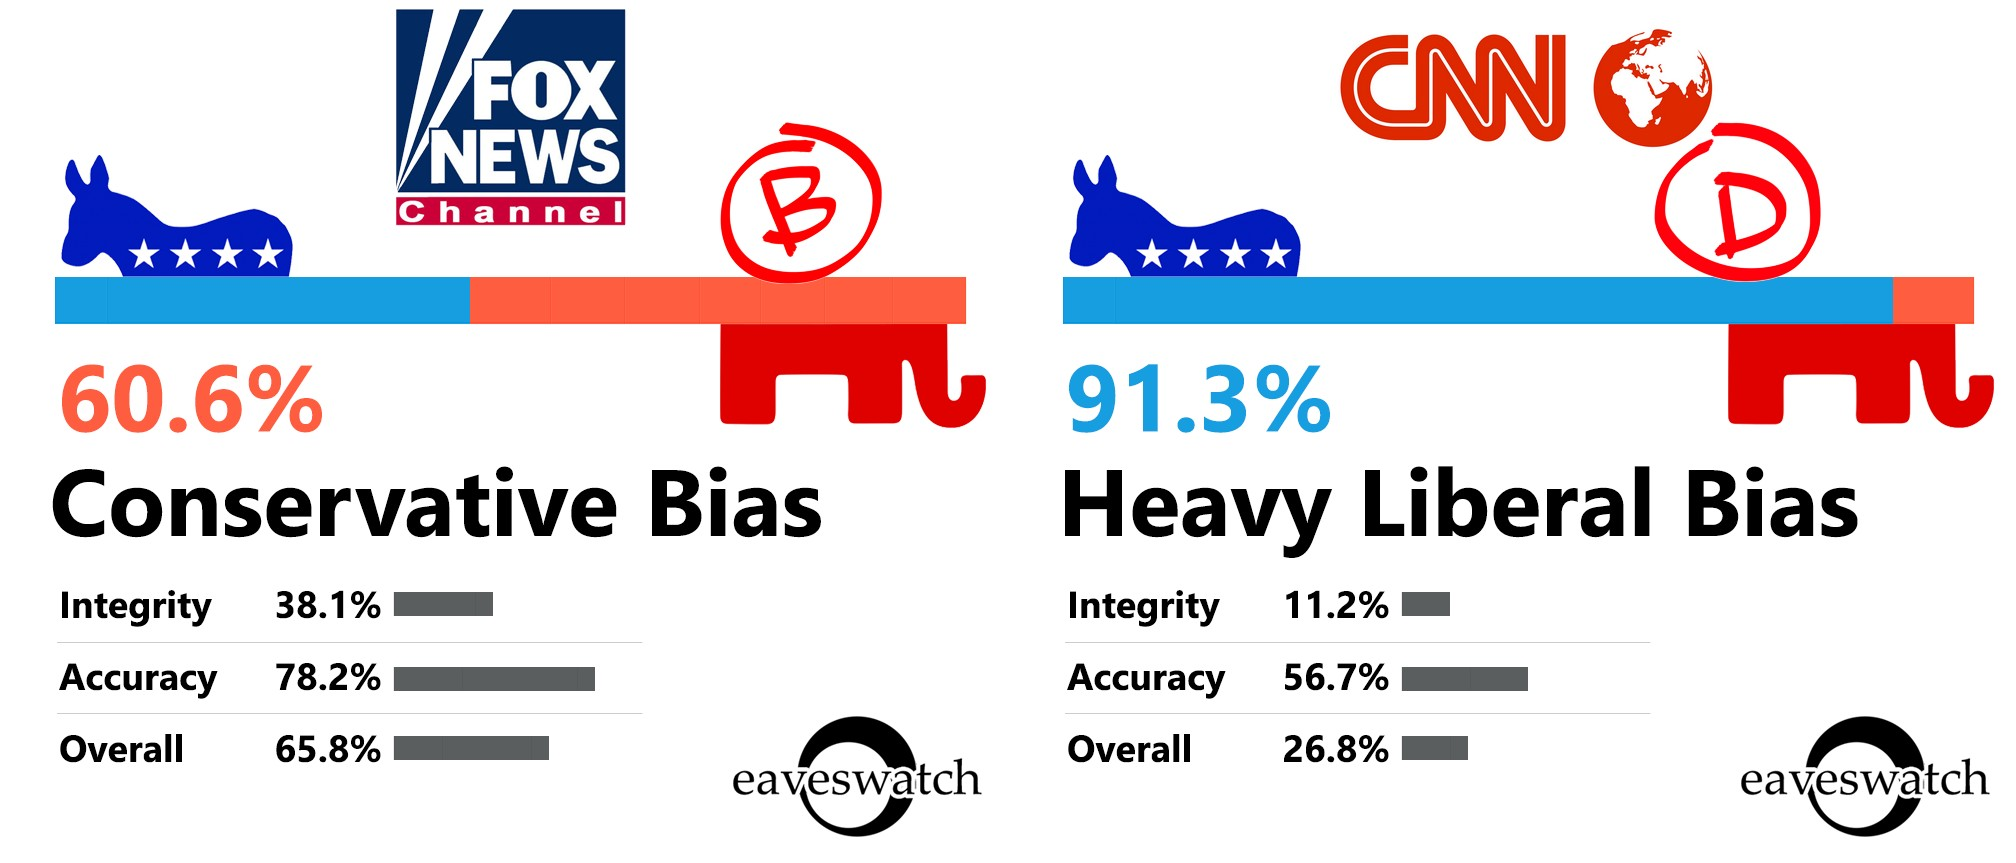 Politifact study: fox news lies 1.5 times per year on average.